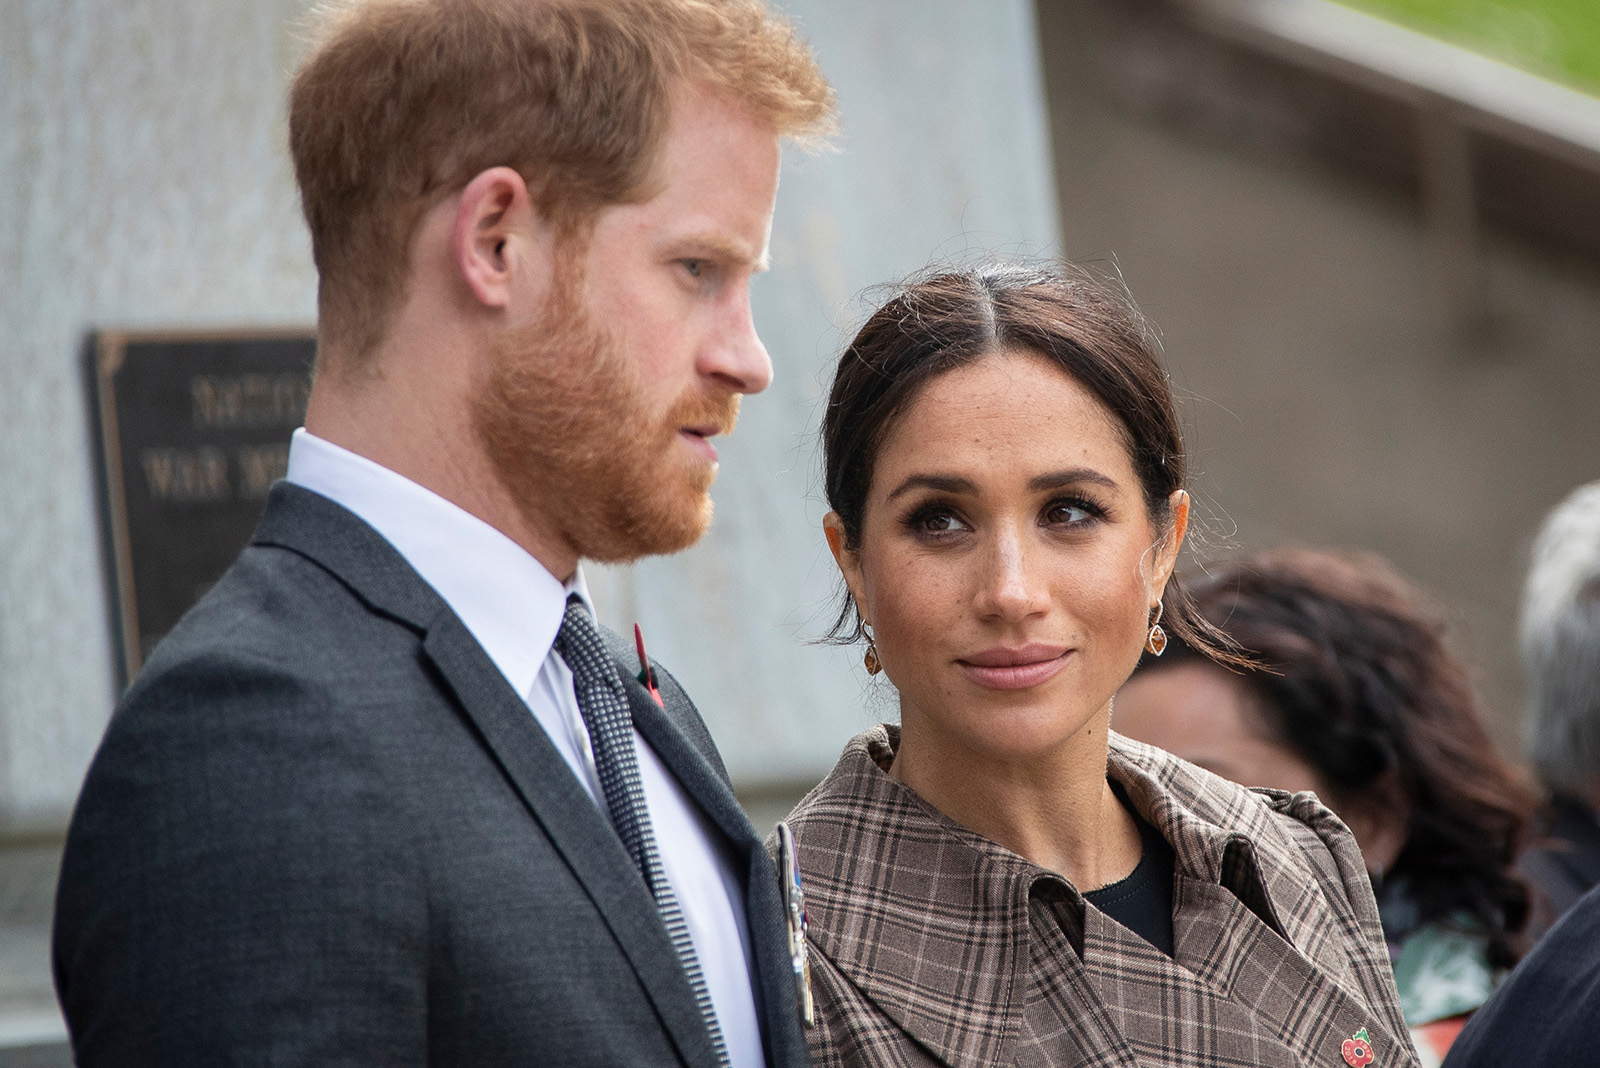 Prince Harry and Meghan Markle have released their first portrait since stepping down from their royal duties. Take a look at the new portrait here.